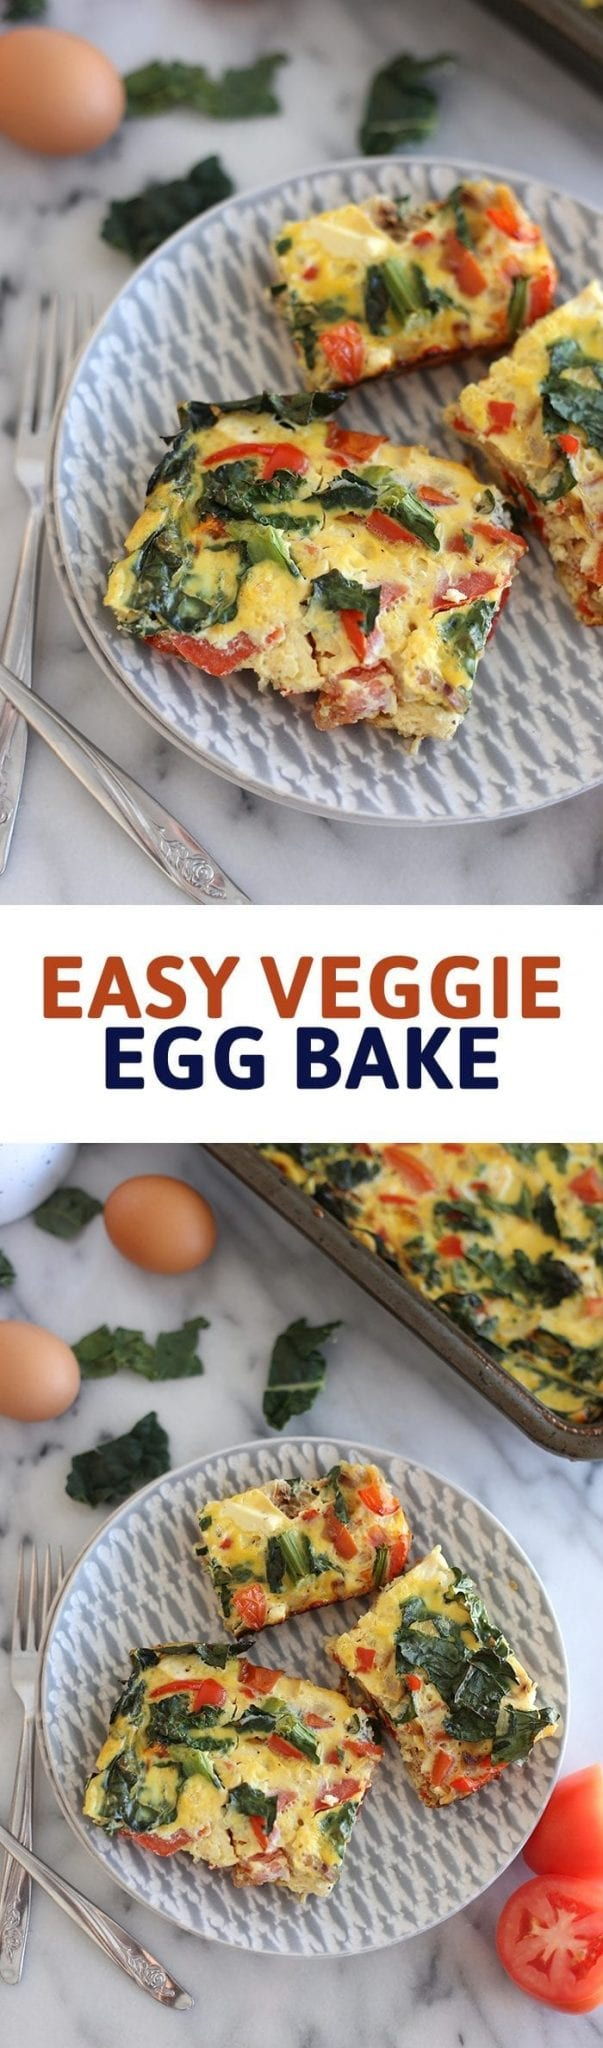 Looking for a super simple breakfast to feed a crowd? This Easy Veggie Egg Bake is perfect for your next breakfast potluck or brunch date. Customize the recipe with your favorite veggies, and bake for a delicious breakfast meal.